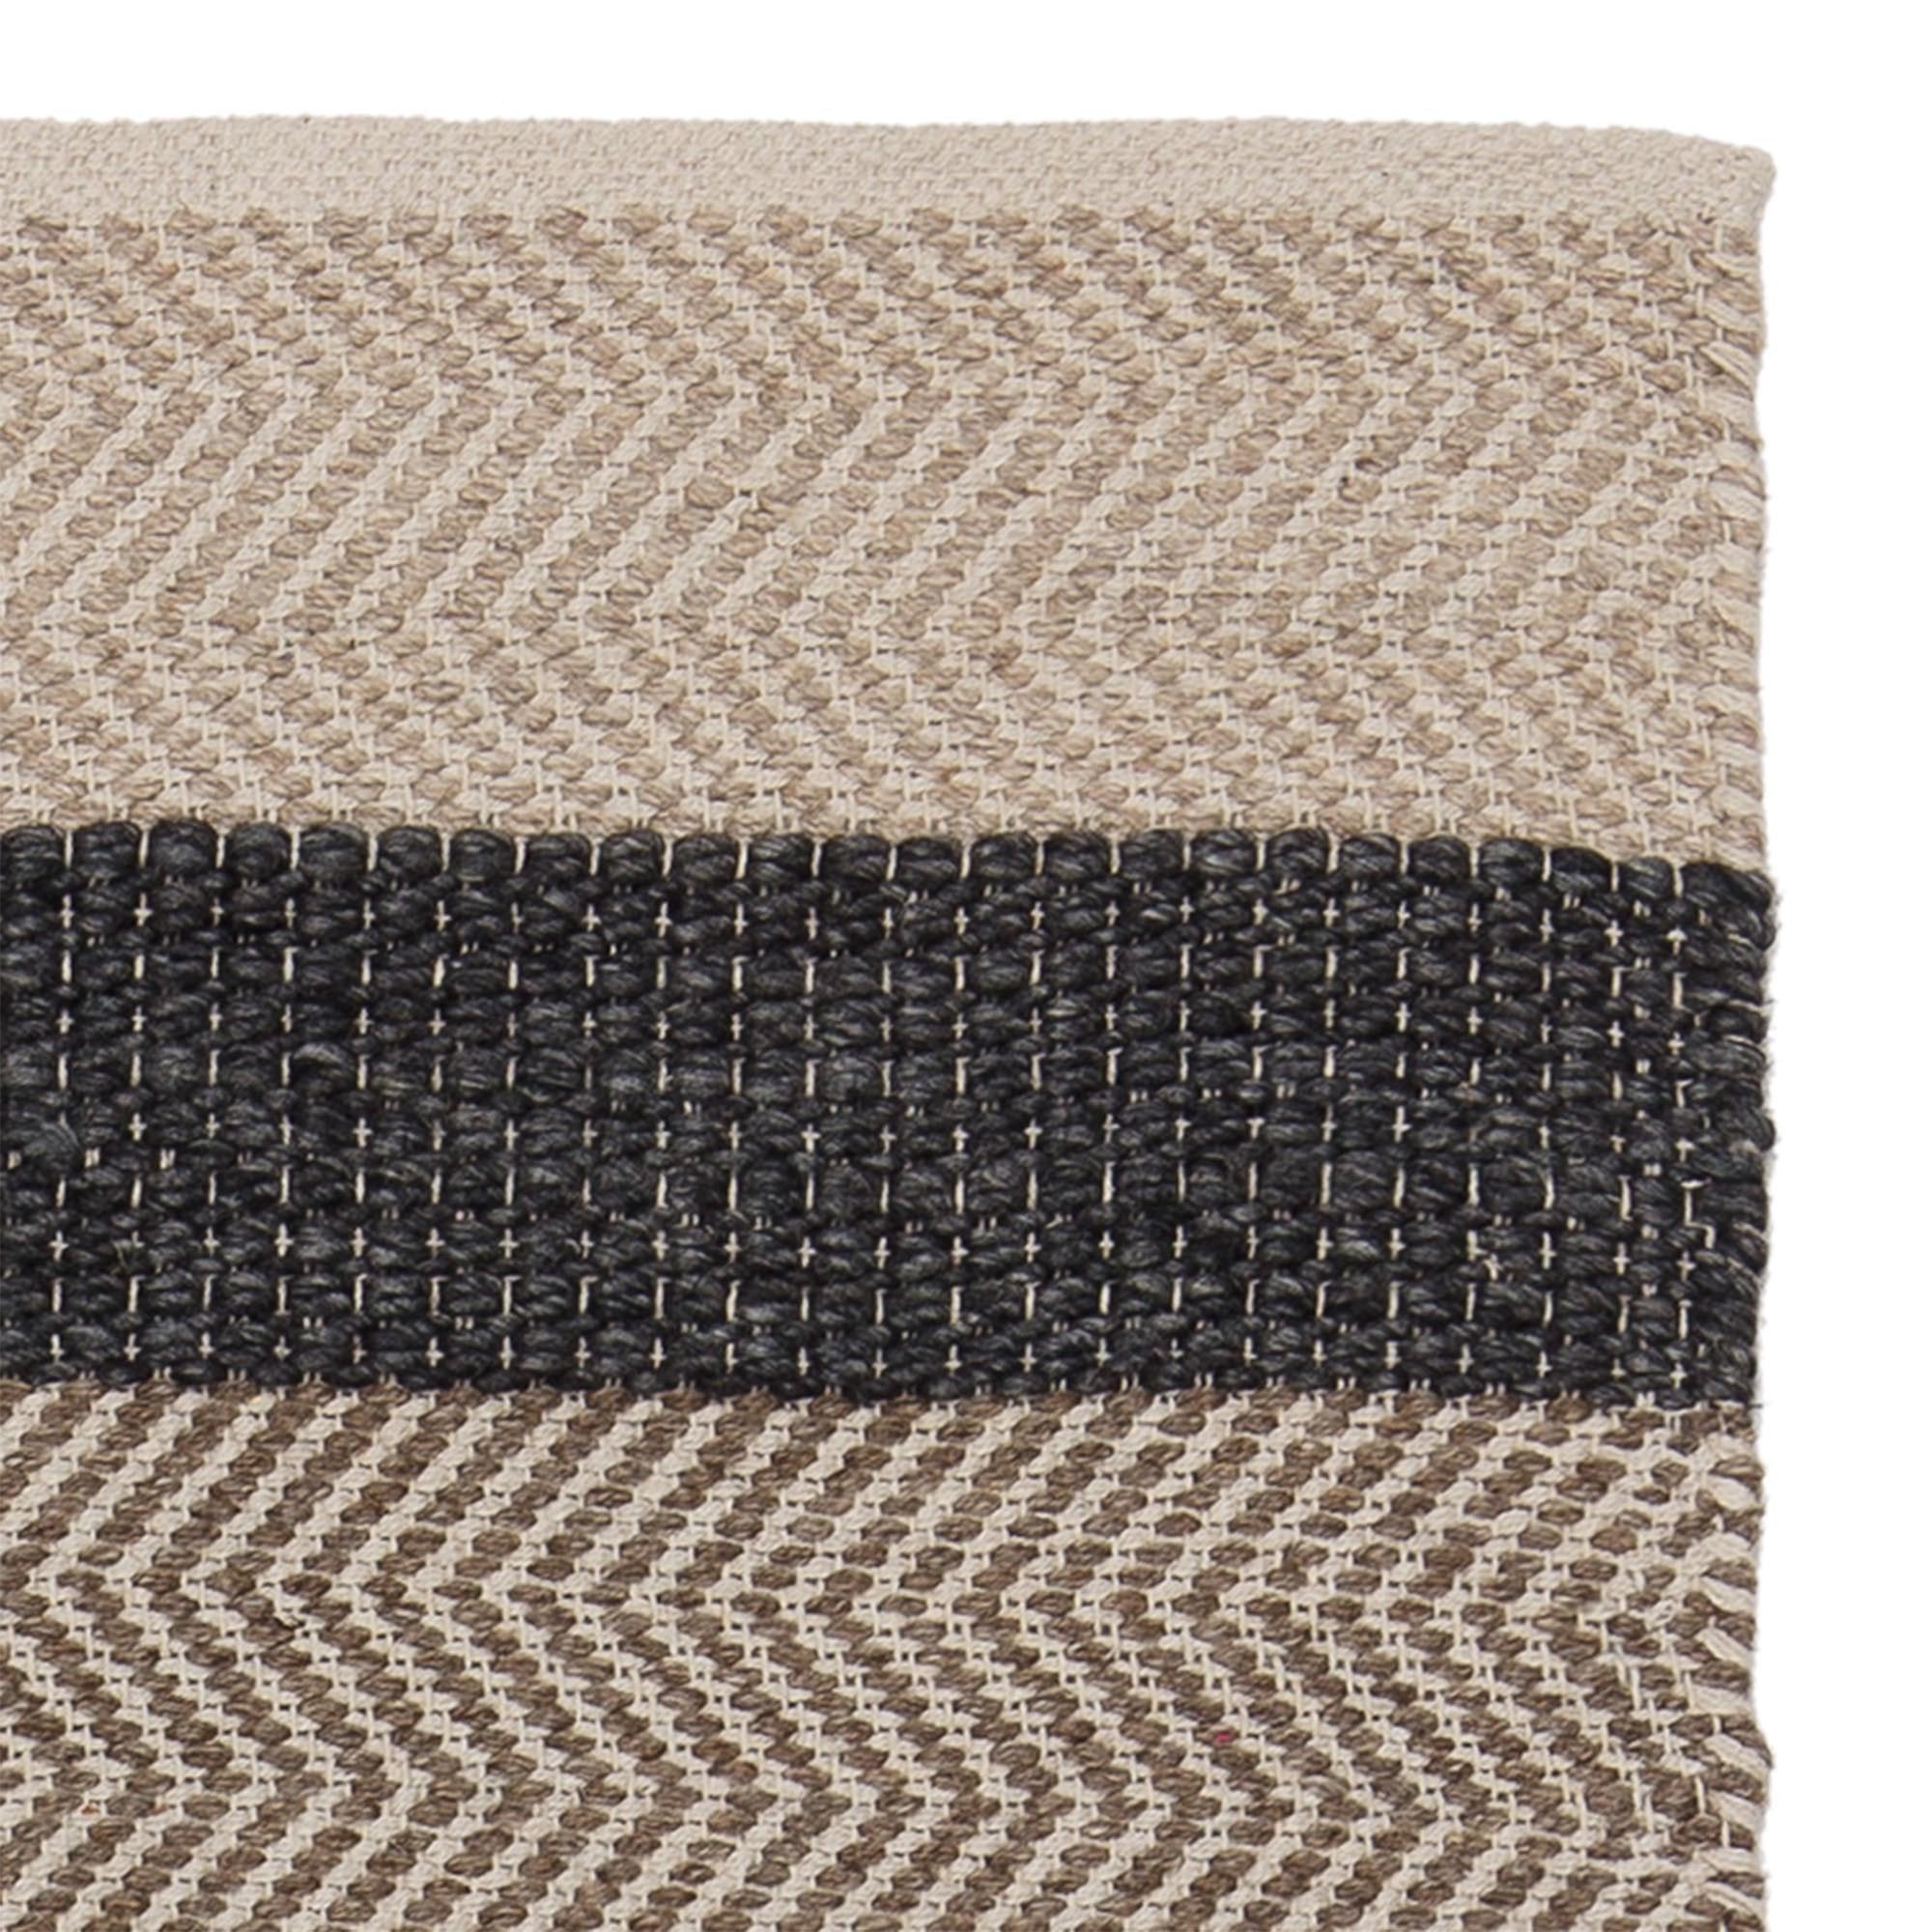 Alto rug, charcoal & beige & light brown, 35% wool & 35% cotton & 30% viscose